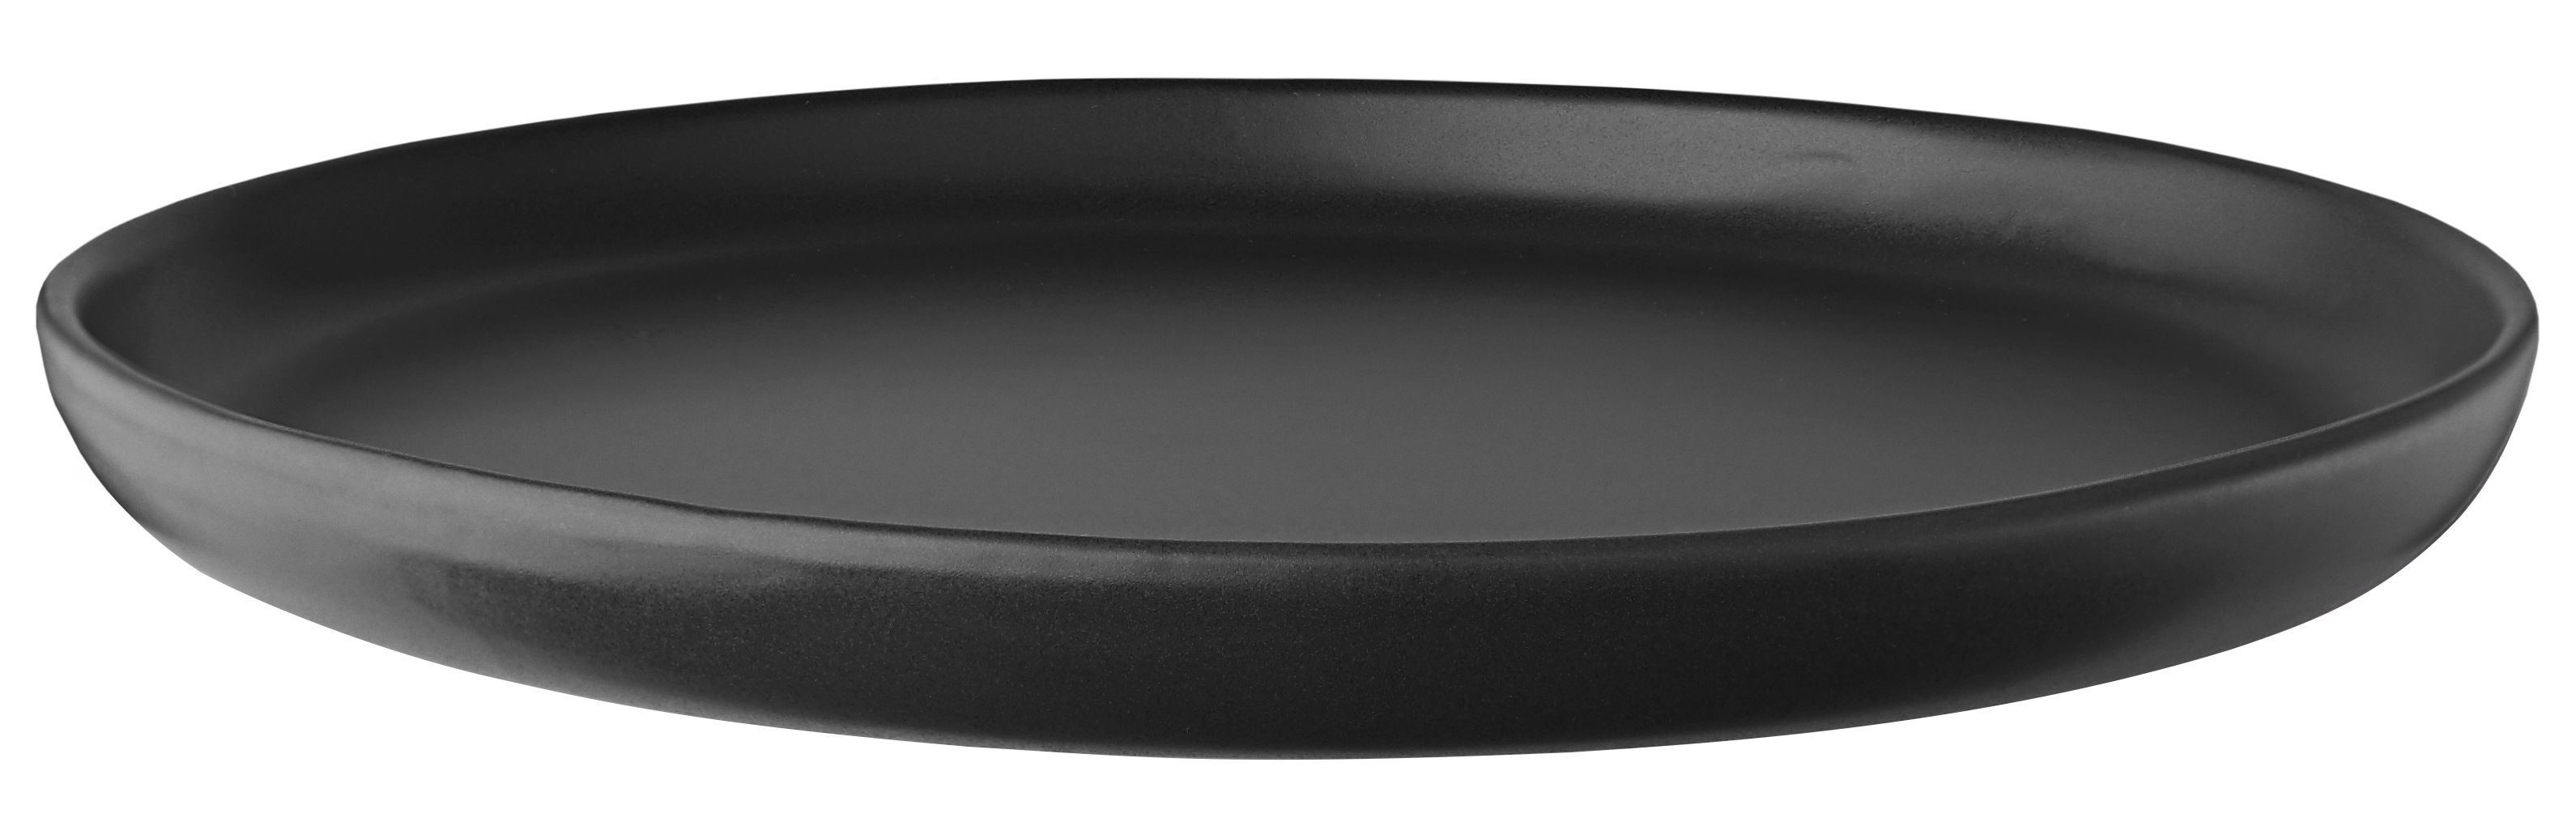 Arts de la table - Assiettes - Assiette plate Nordic kitchen / Ø 25 cm - Grès - Eva Solo - Ø 25 cm / Noir mat - Grès